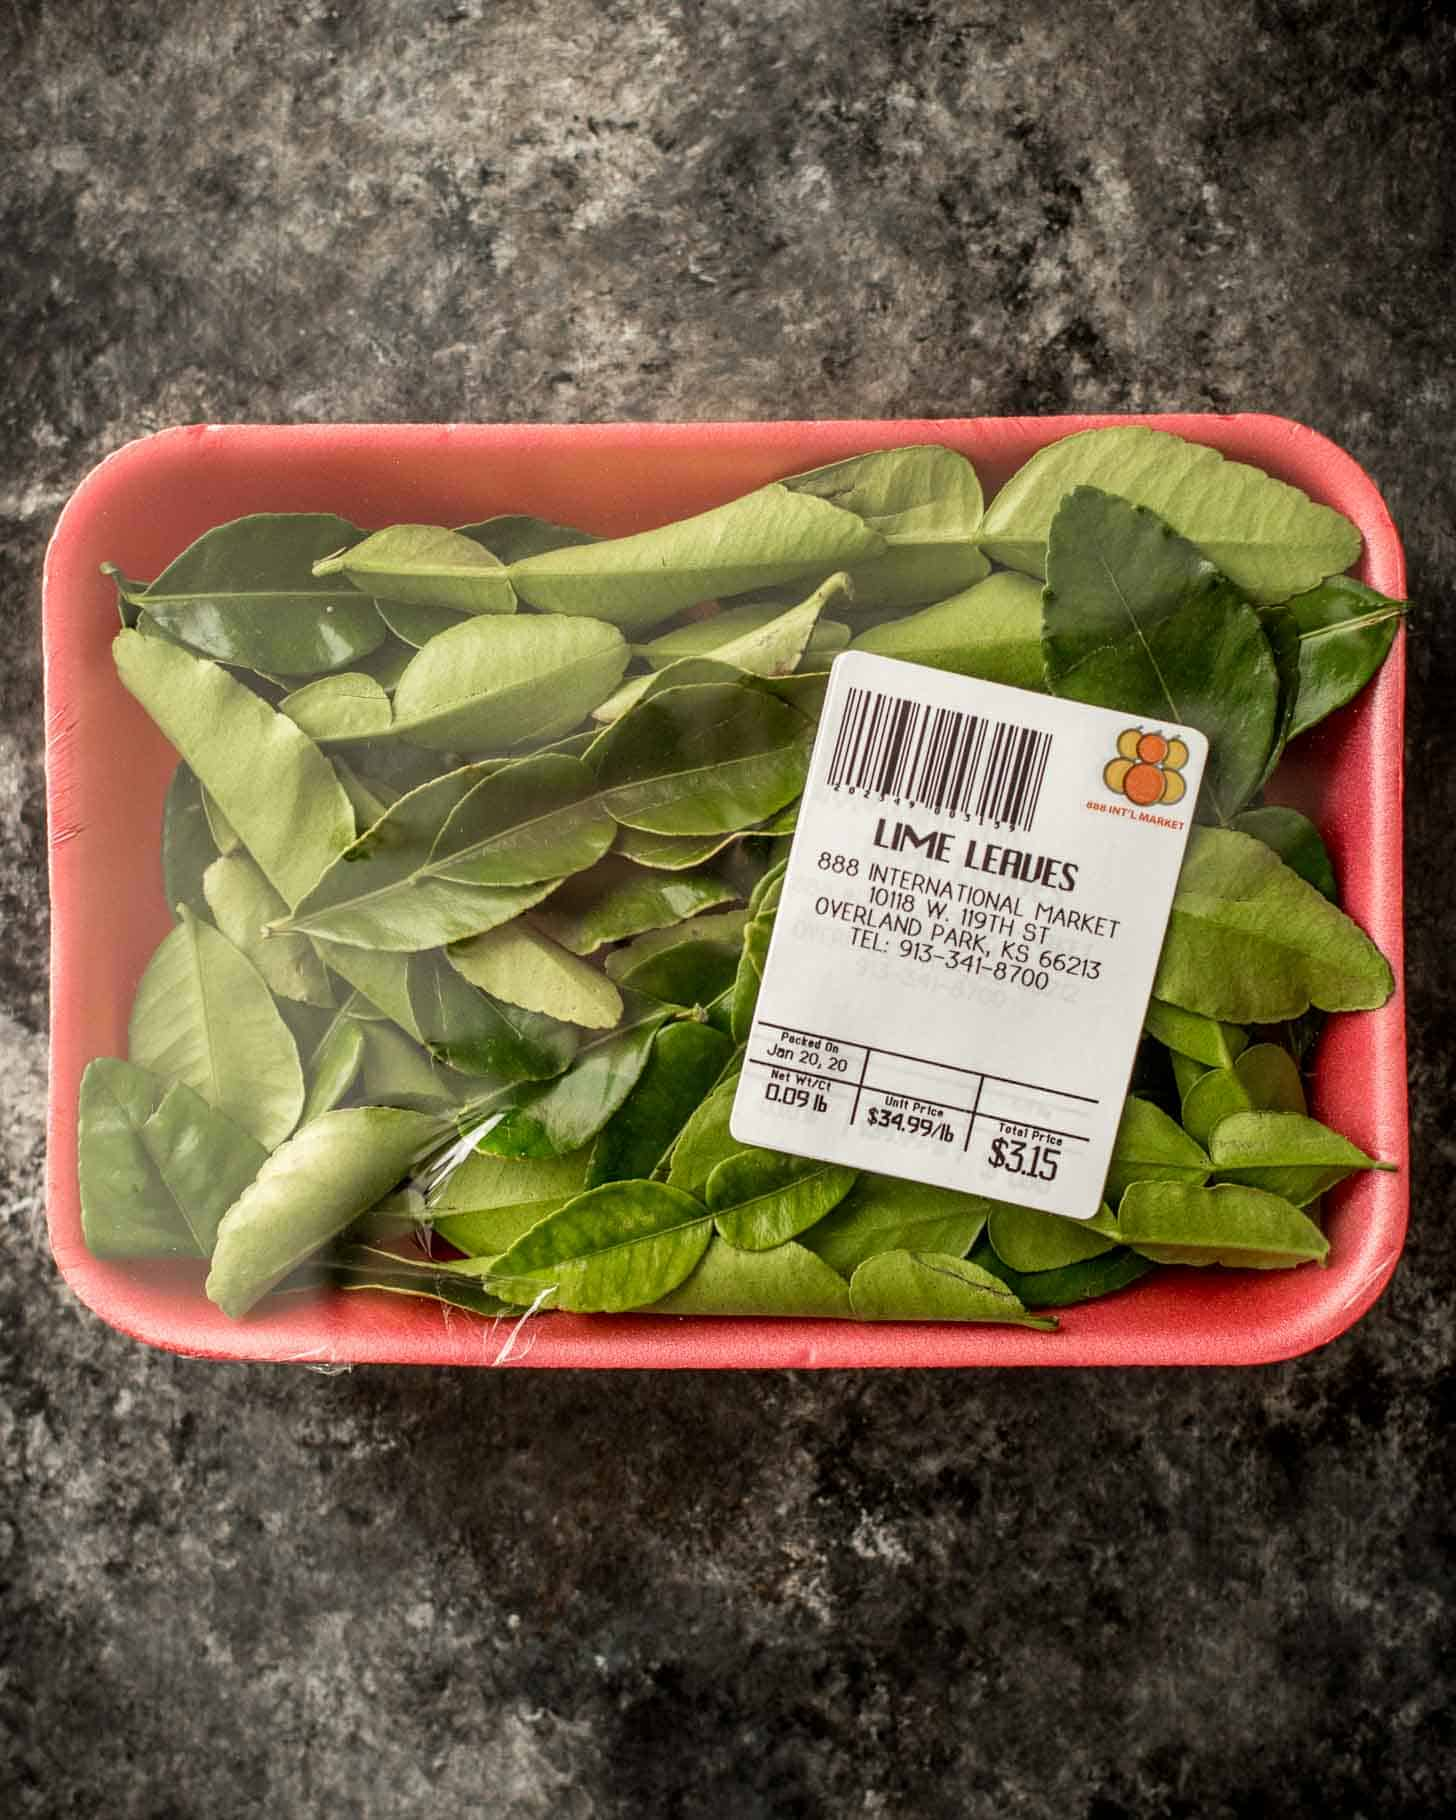 kaffir lime leaves in a package on a grey countertop